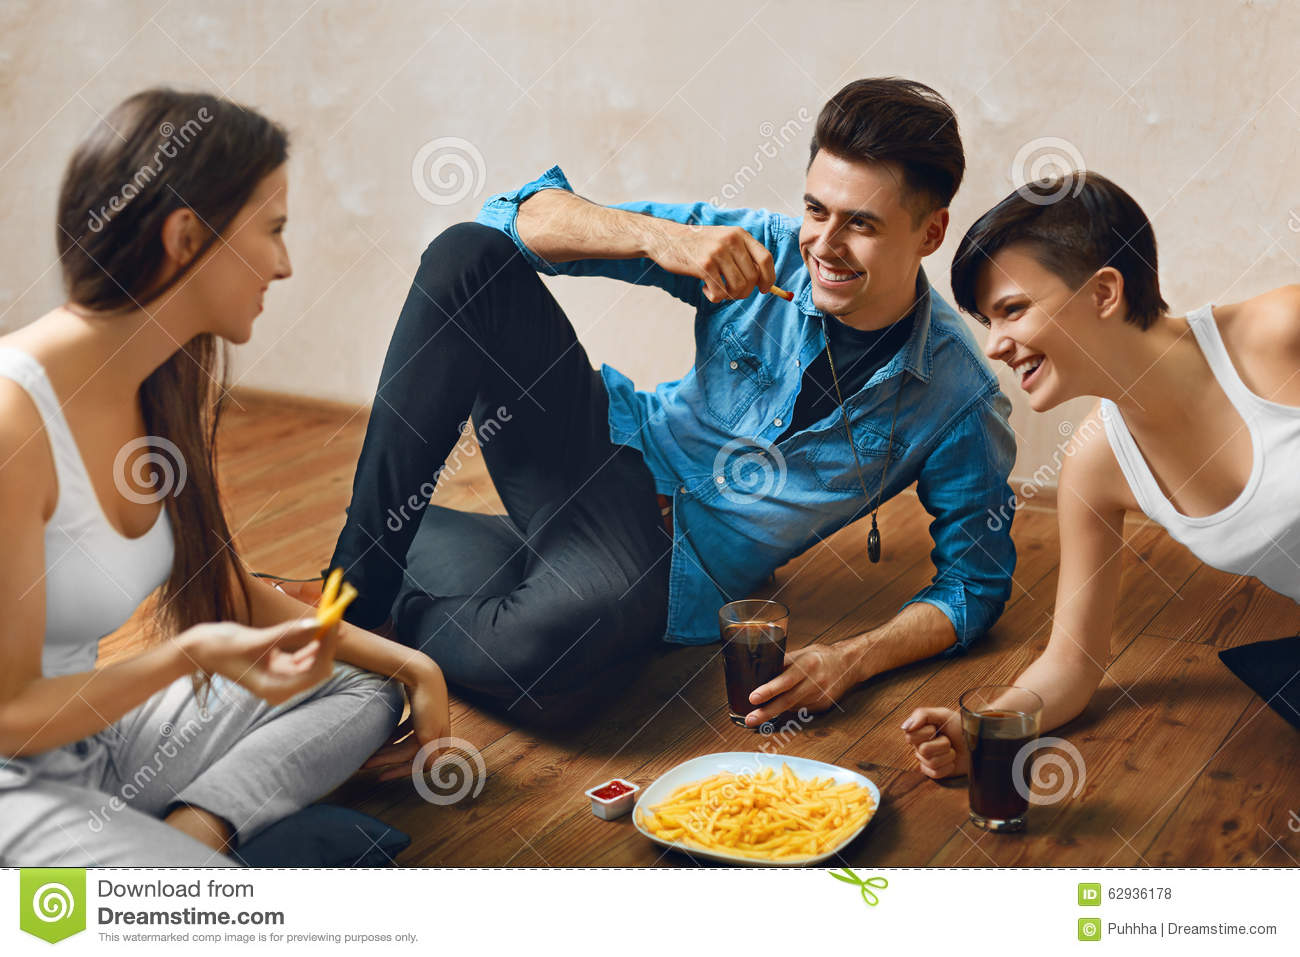 Eating Food Group Of Friends Fast Drinking Soda Stock Photo